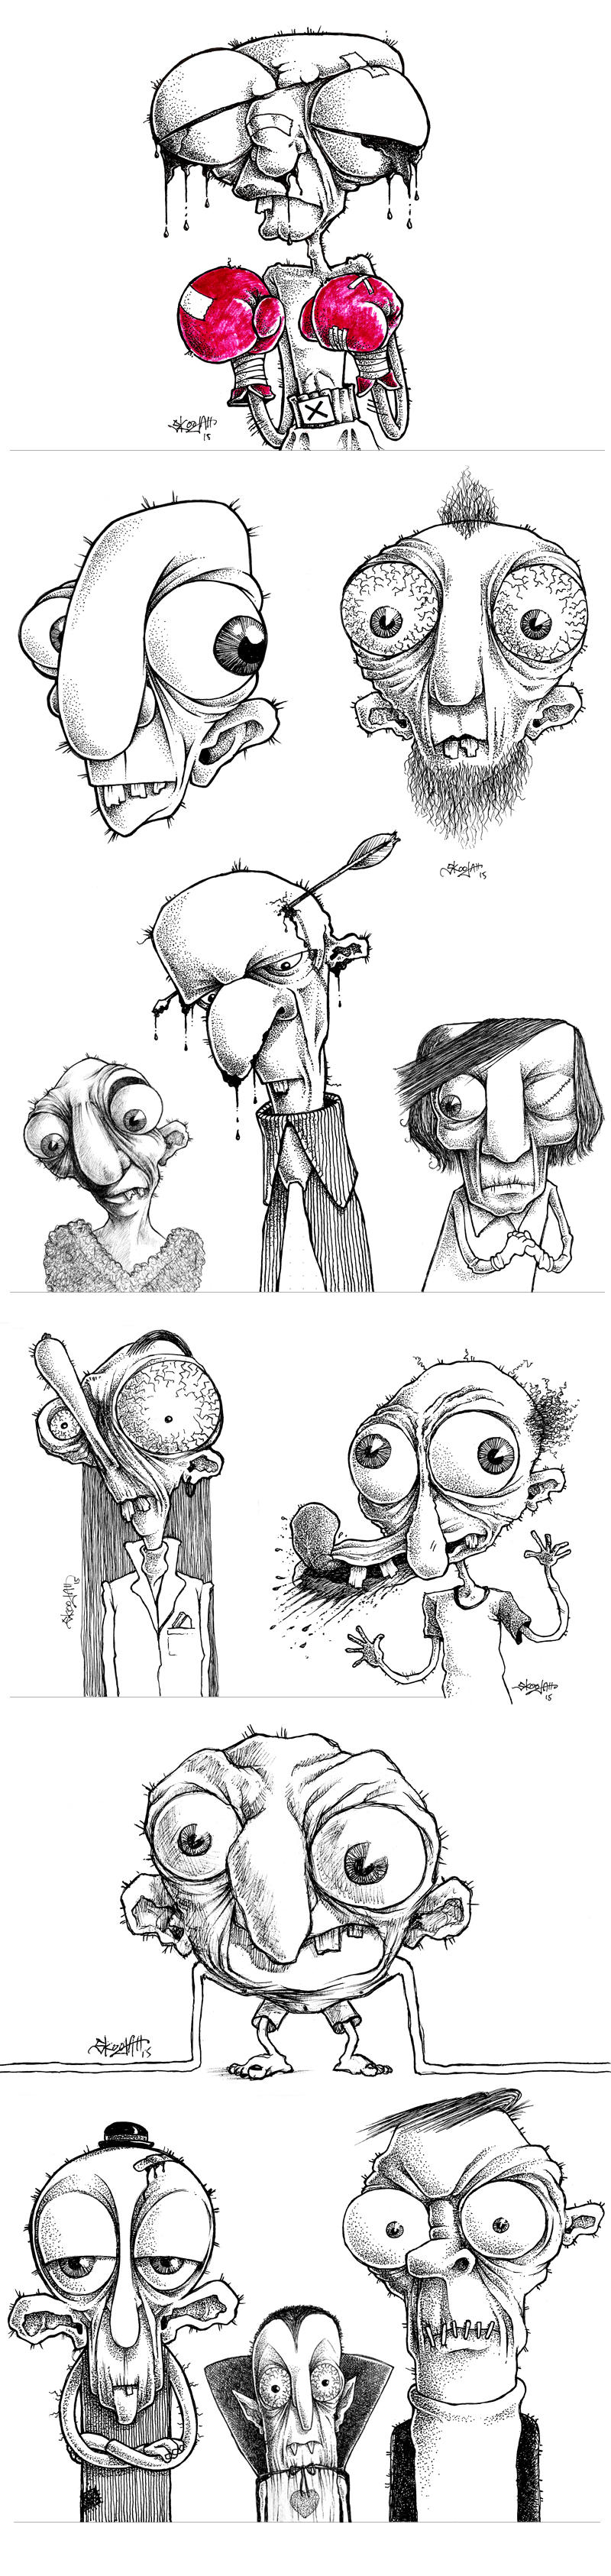 Characters2015_site_creative2